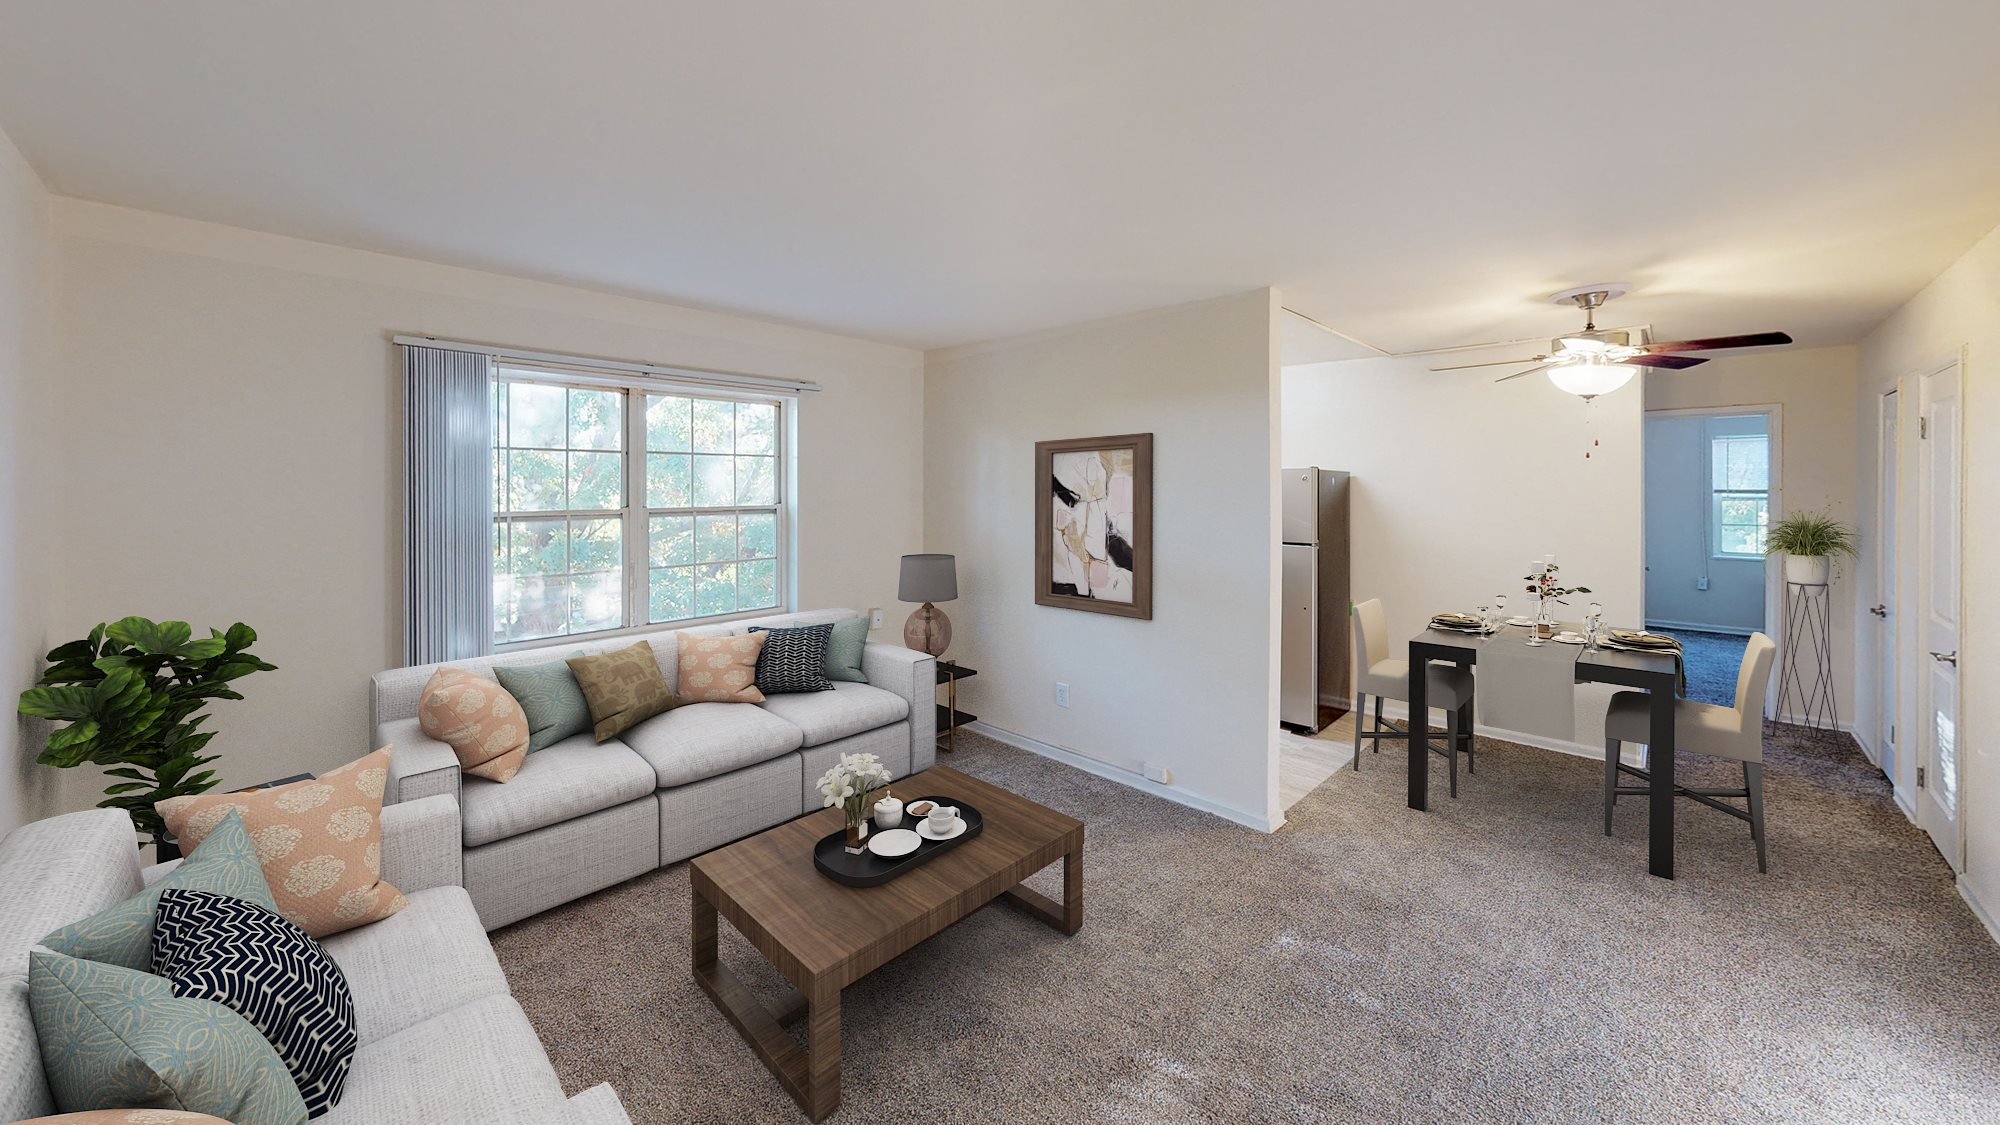 Manor-village-apartments-southeast-dc-carpeted-two-bedroom-livingroom